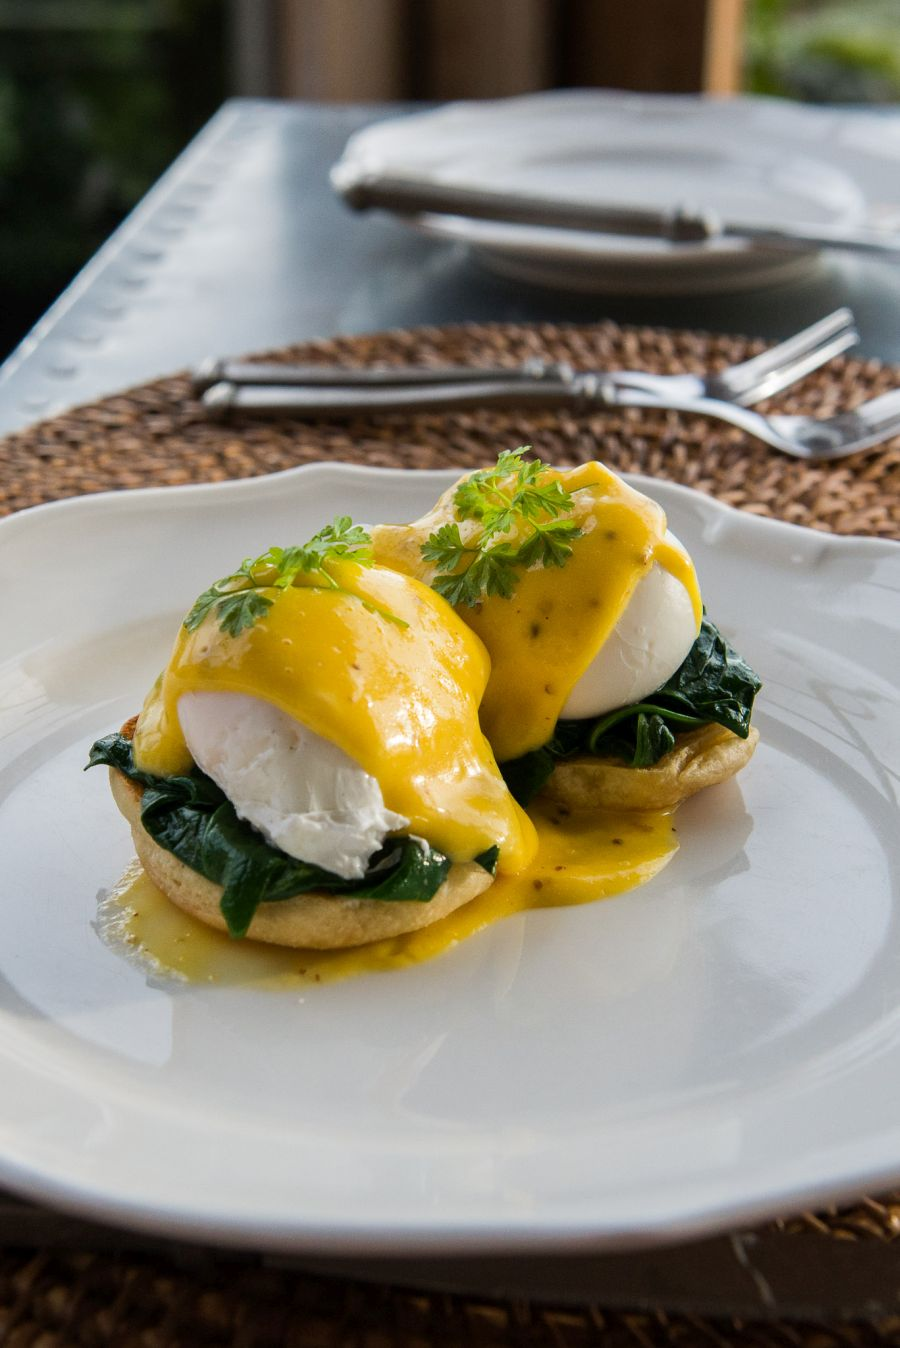 Eggs Benedict - with free range poached eggs, whole grain mustard hollandaise and spinach